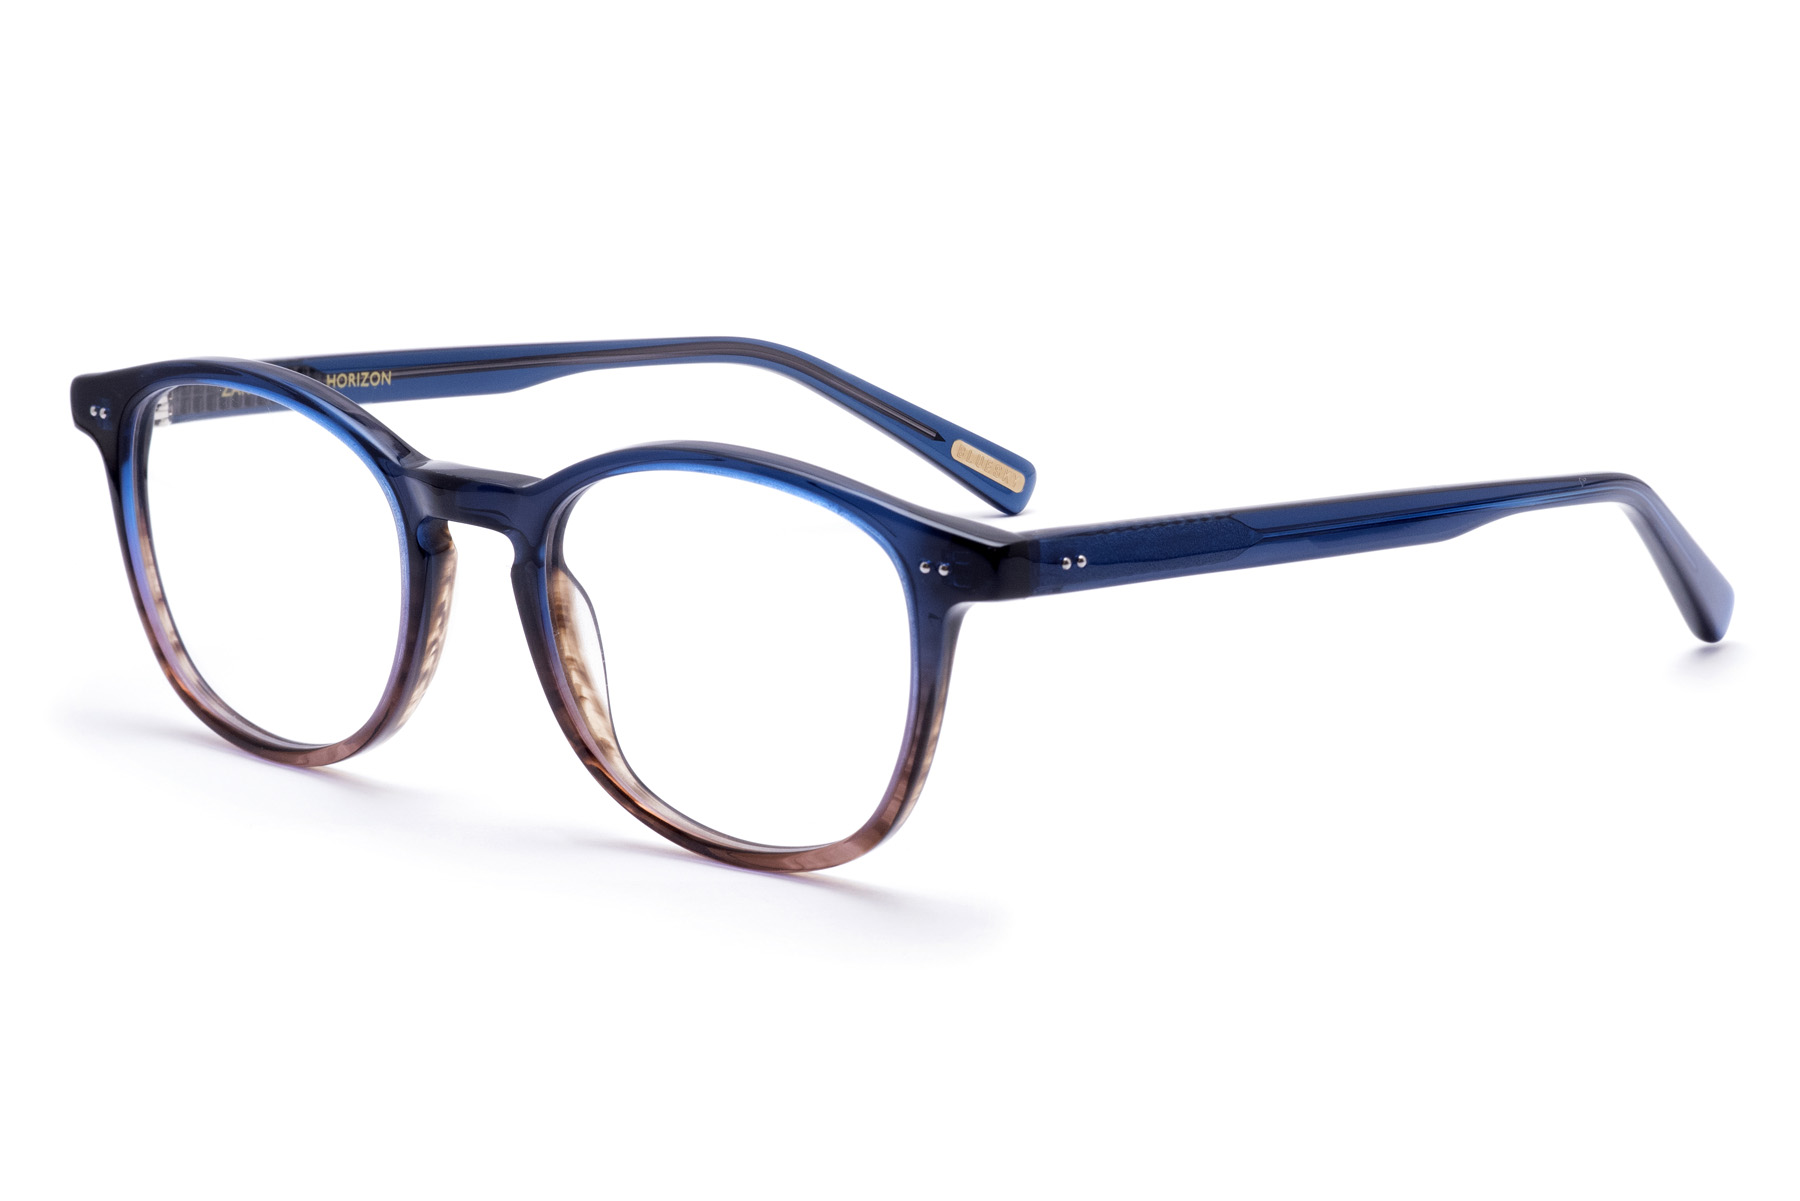 Prescription Glasses Bluesky Zakopane Horizon Unisex 2020